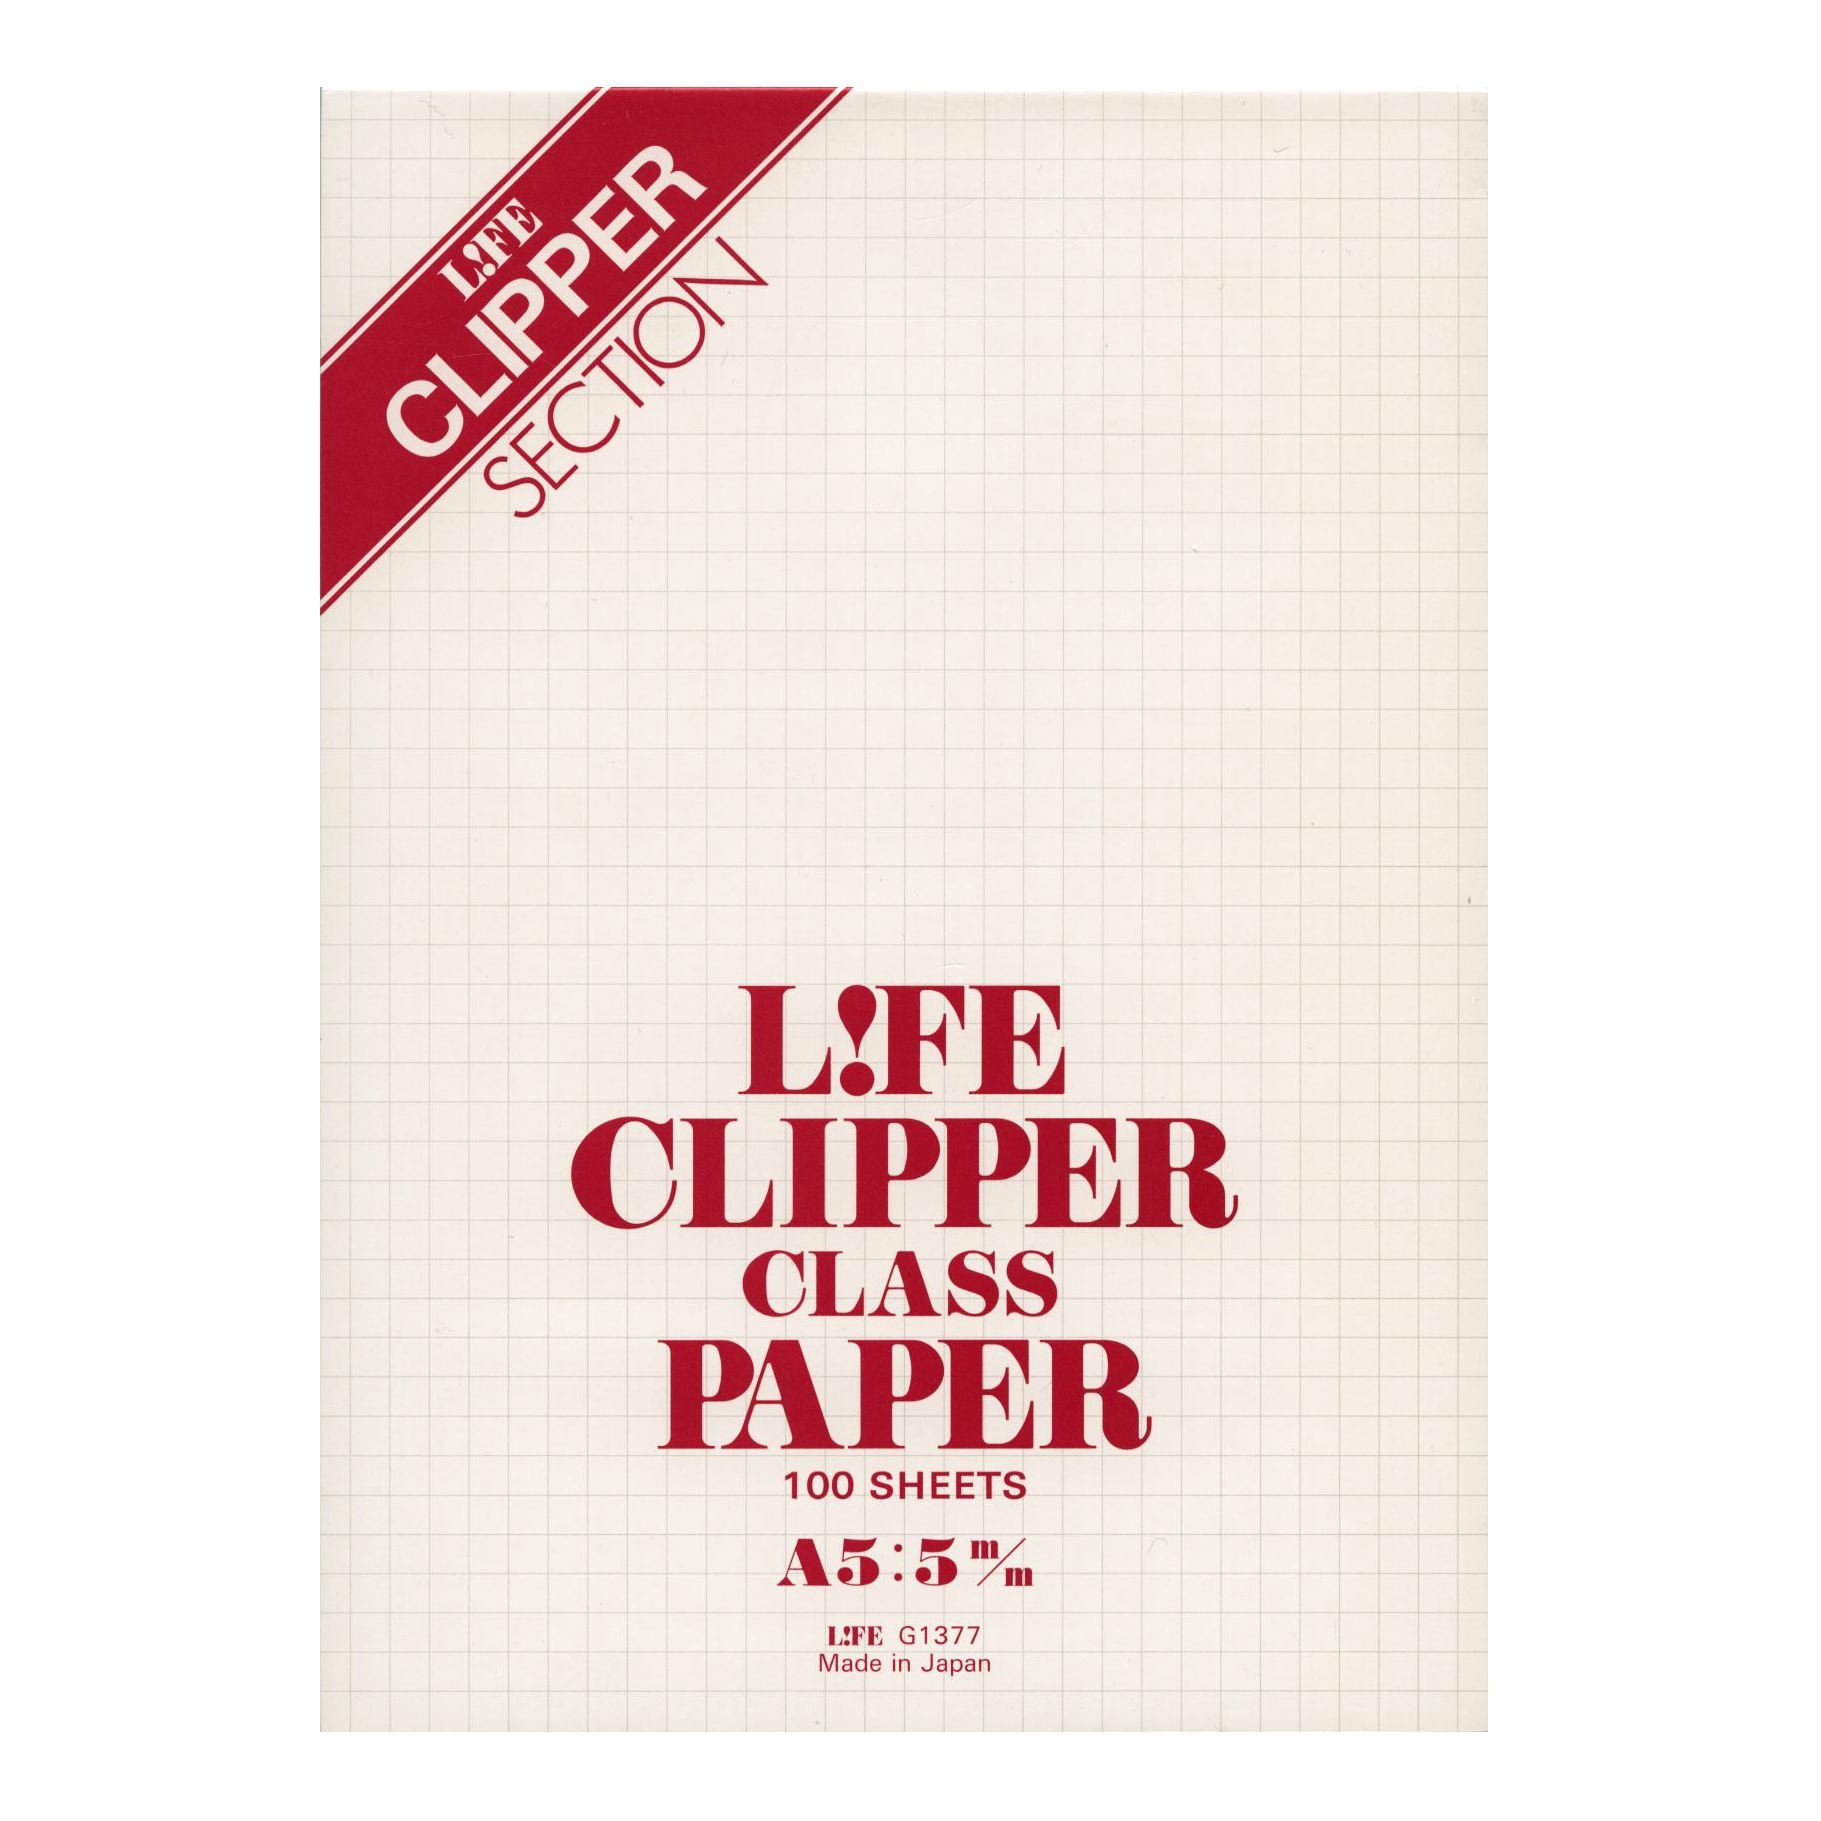 Life A5 size Clipper report pad, 5mm graph-ruled, 100 sheets G1377